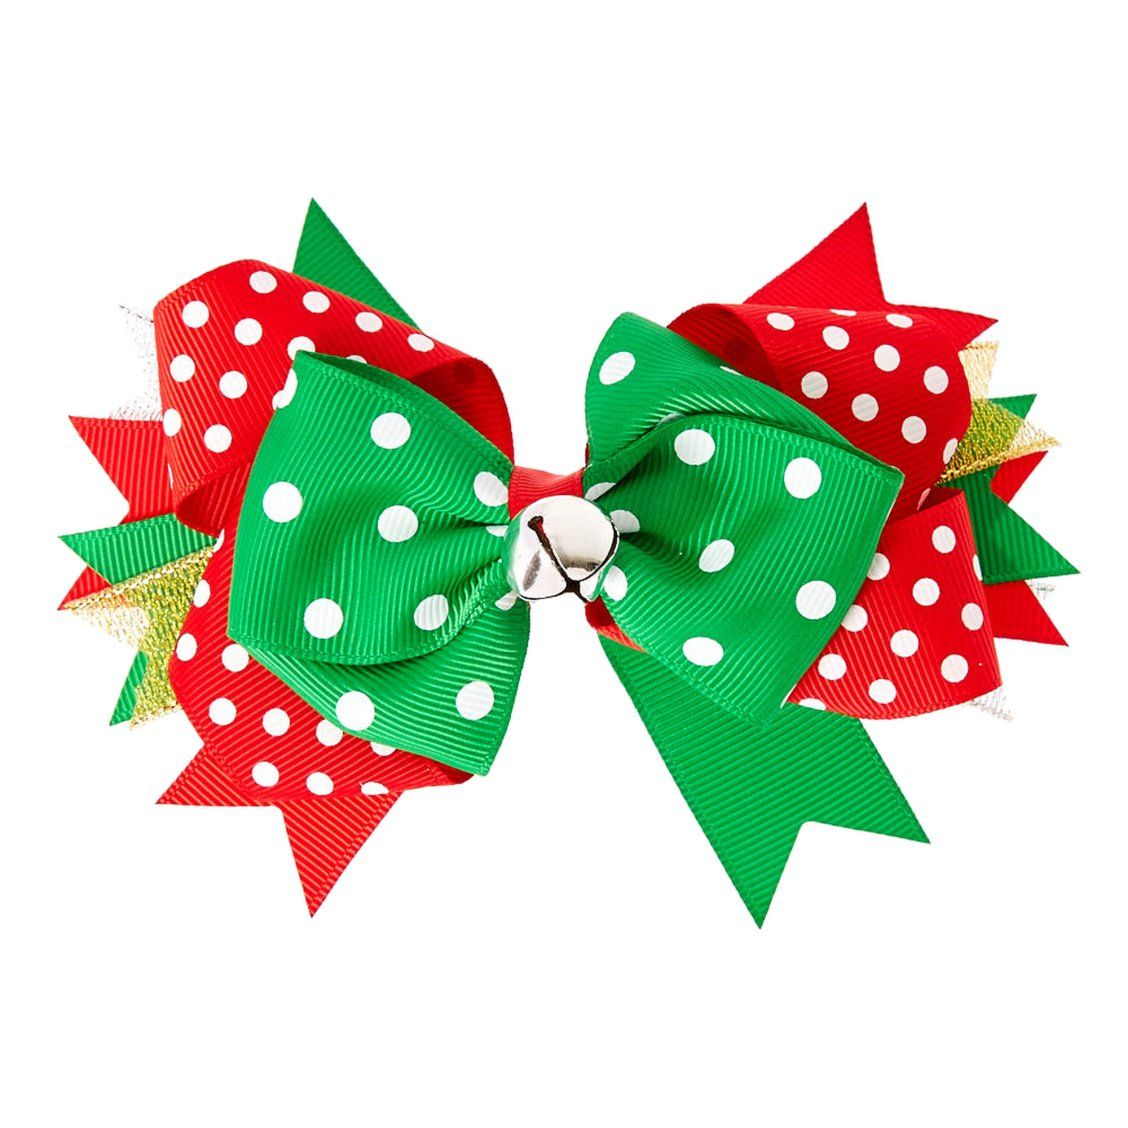 Polka Dot Christmas Hair Bow This Sassy Bow Will Add Christmas Cheer To Your Look Red White And Green Ribbons Christmas Hair Bows Hair Bows Christmas Hair